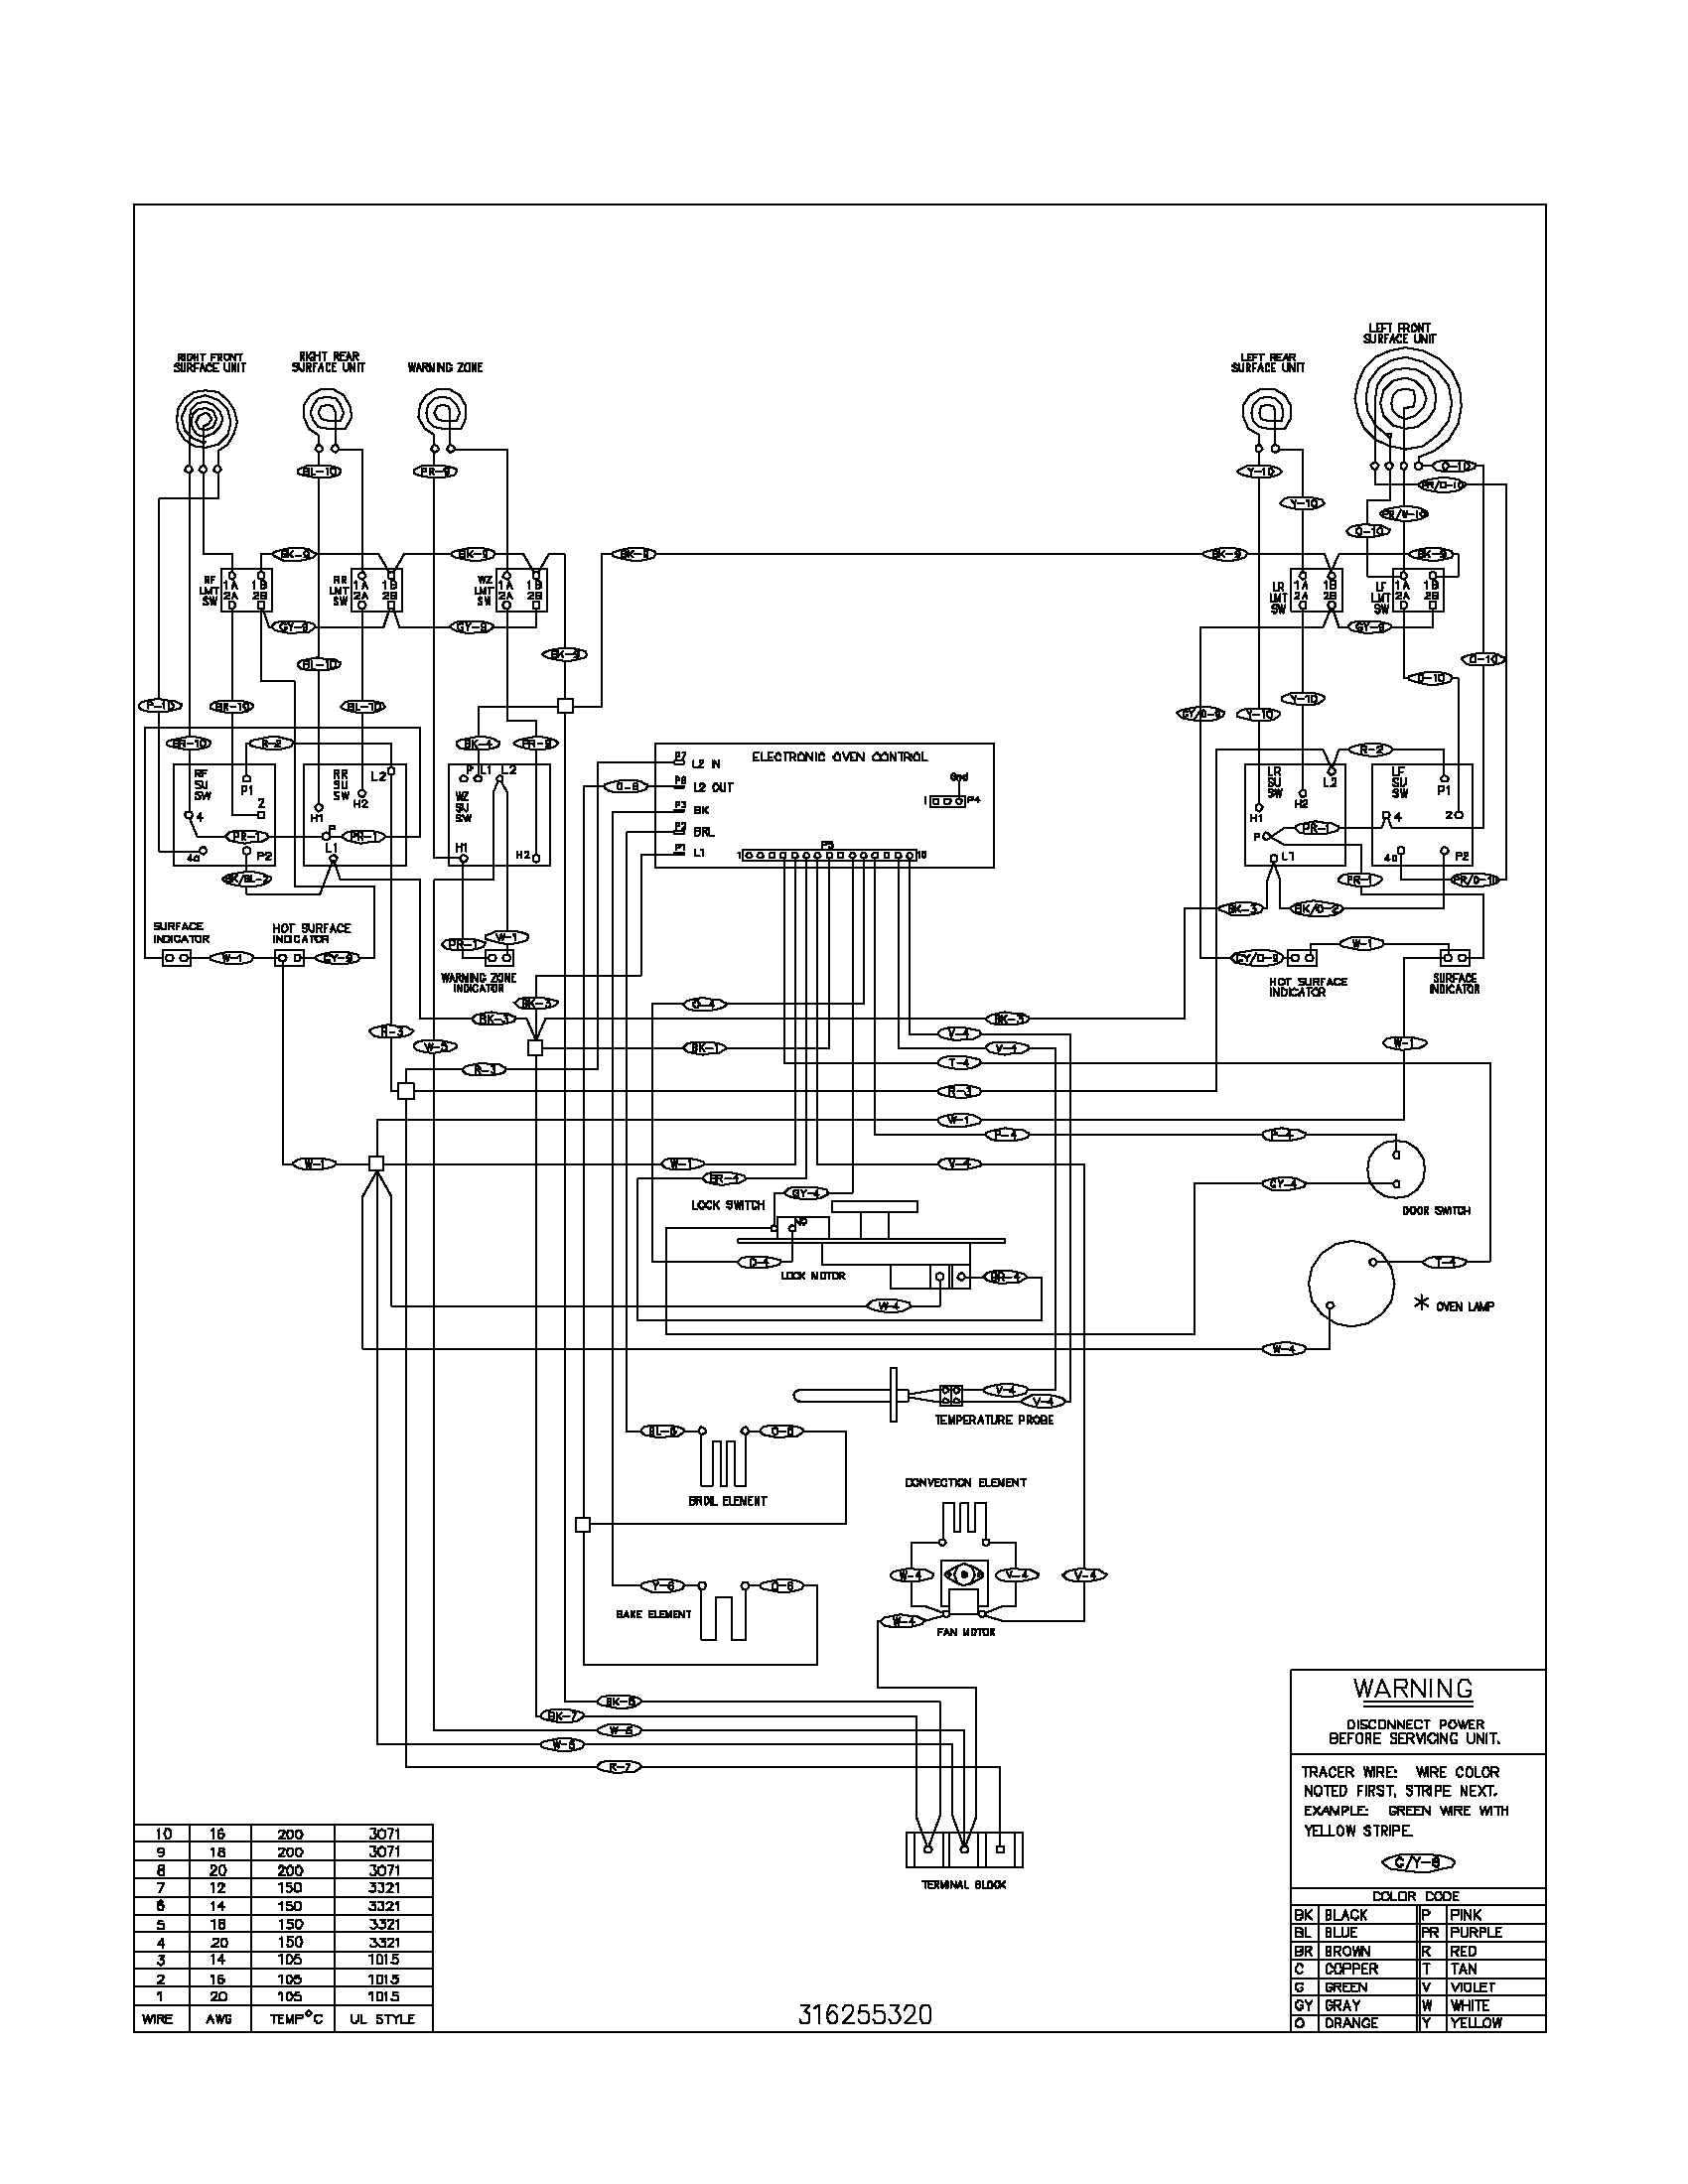 hight resolution of wiring diagram for a stove online manuual of wiring diagram electrical outlet symbols blueprints on ge stove electric range wiring